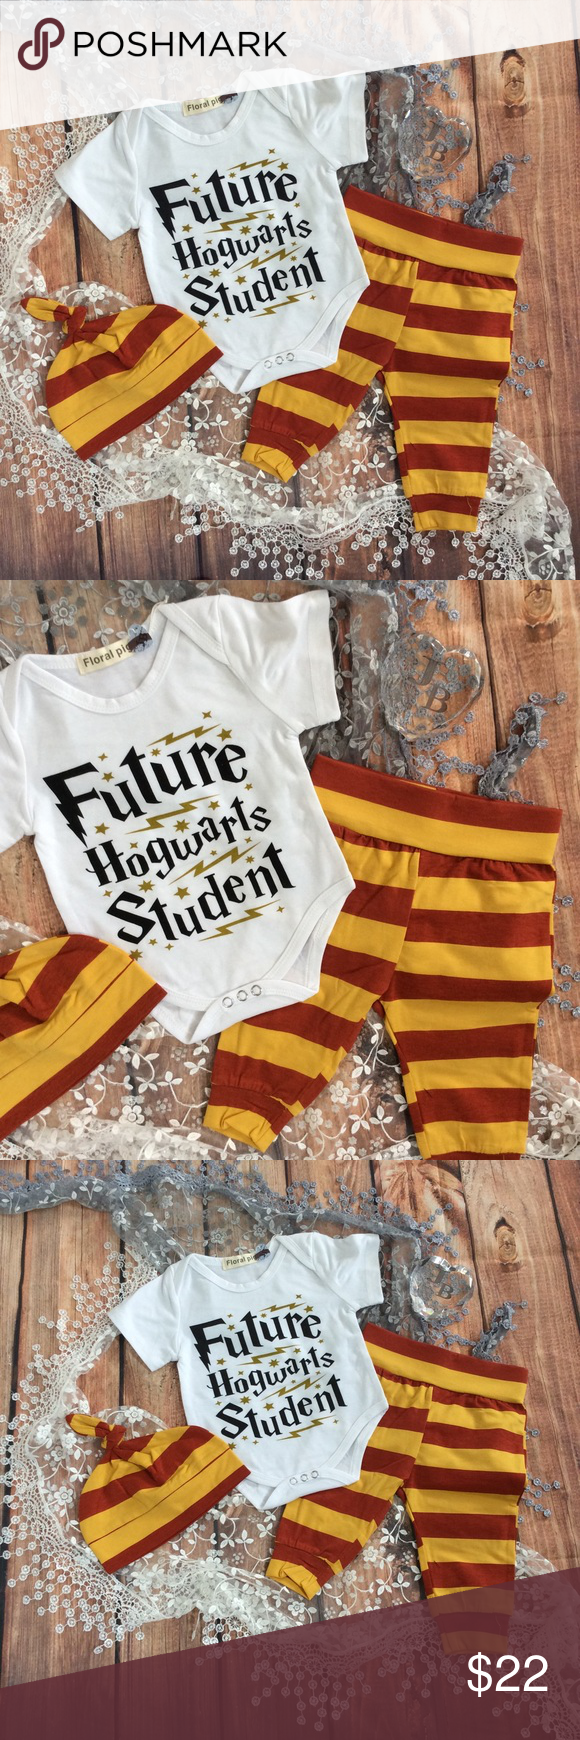 b8137f6a2d5 Boutique Baby FUTURE HOGWART STUDENT Harry Potter Perfect for all you HP  fans out there. Baby white short sleeve onesie with FUTURE HOGWART STUDENT  across ...